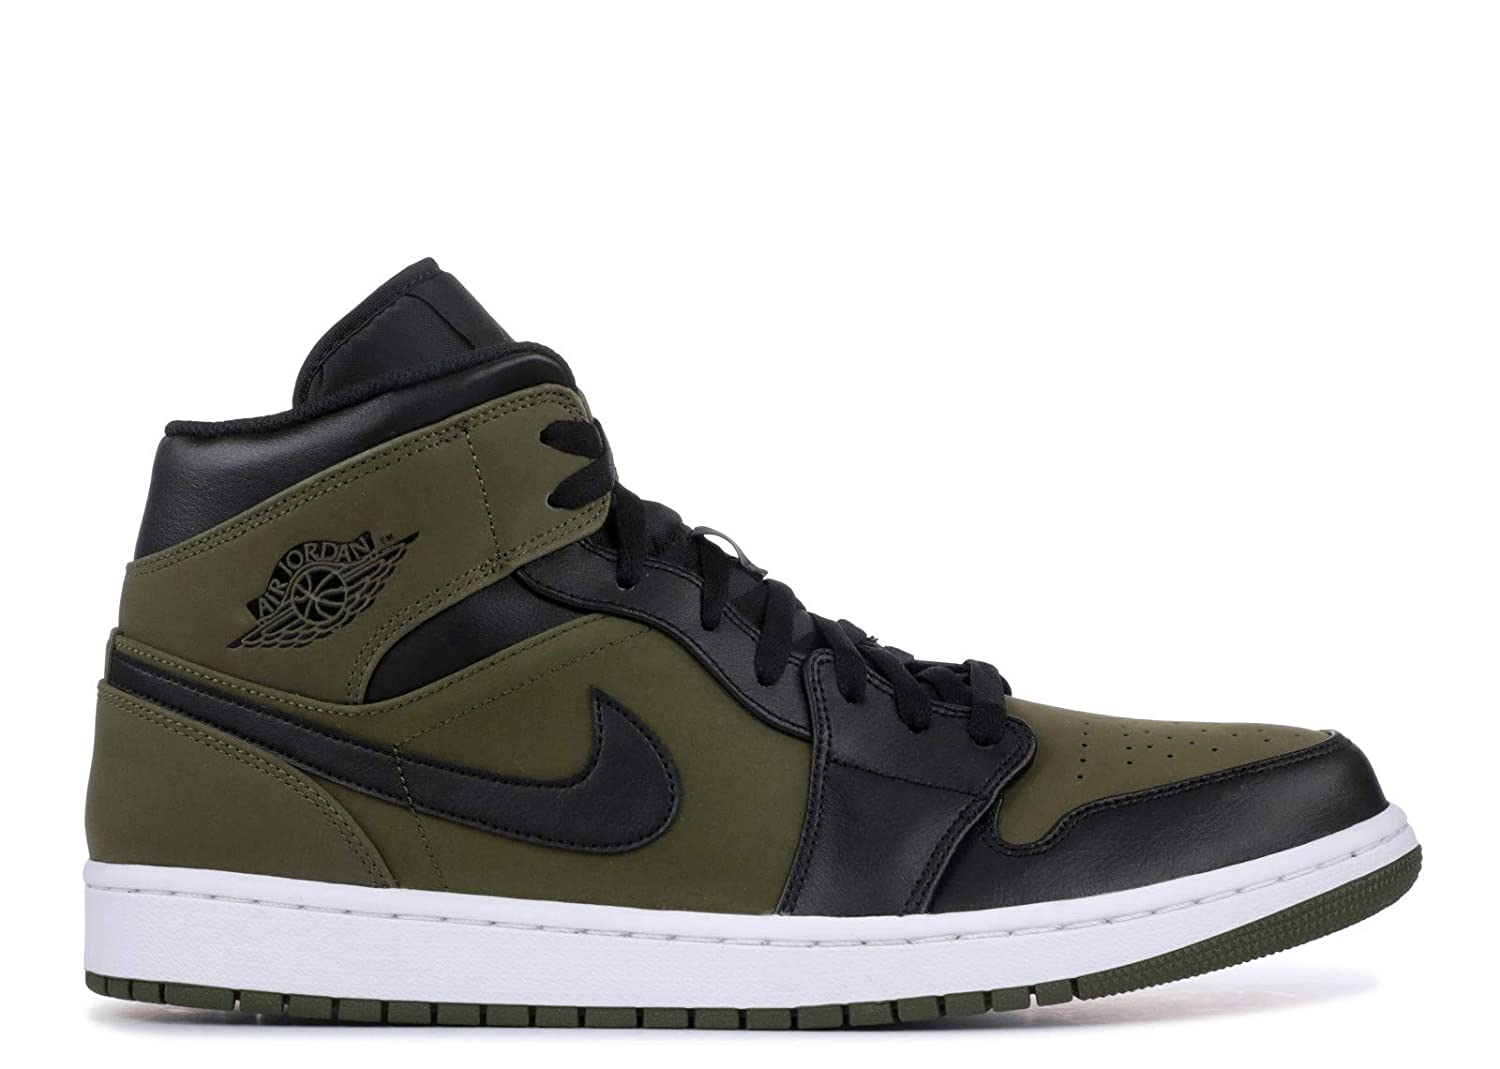 finest selection bc5a4 ab5ba Amazon.com   Nike Mens Air Jordan Retro 1 Mid Basketball Shoes Olive  Canvas Black-White 554724-301 Size 11   Basketball